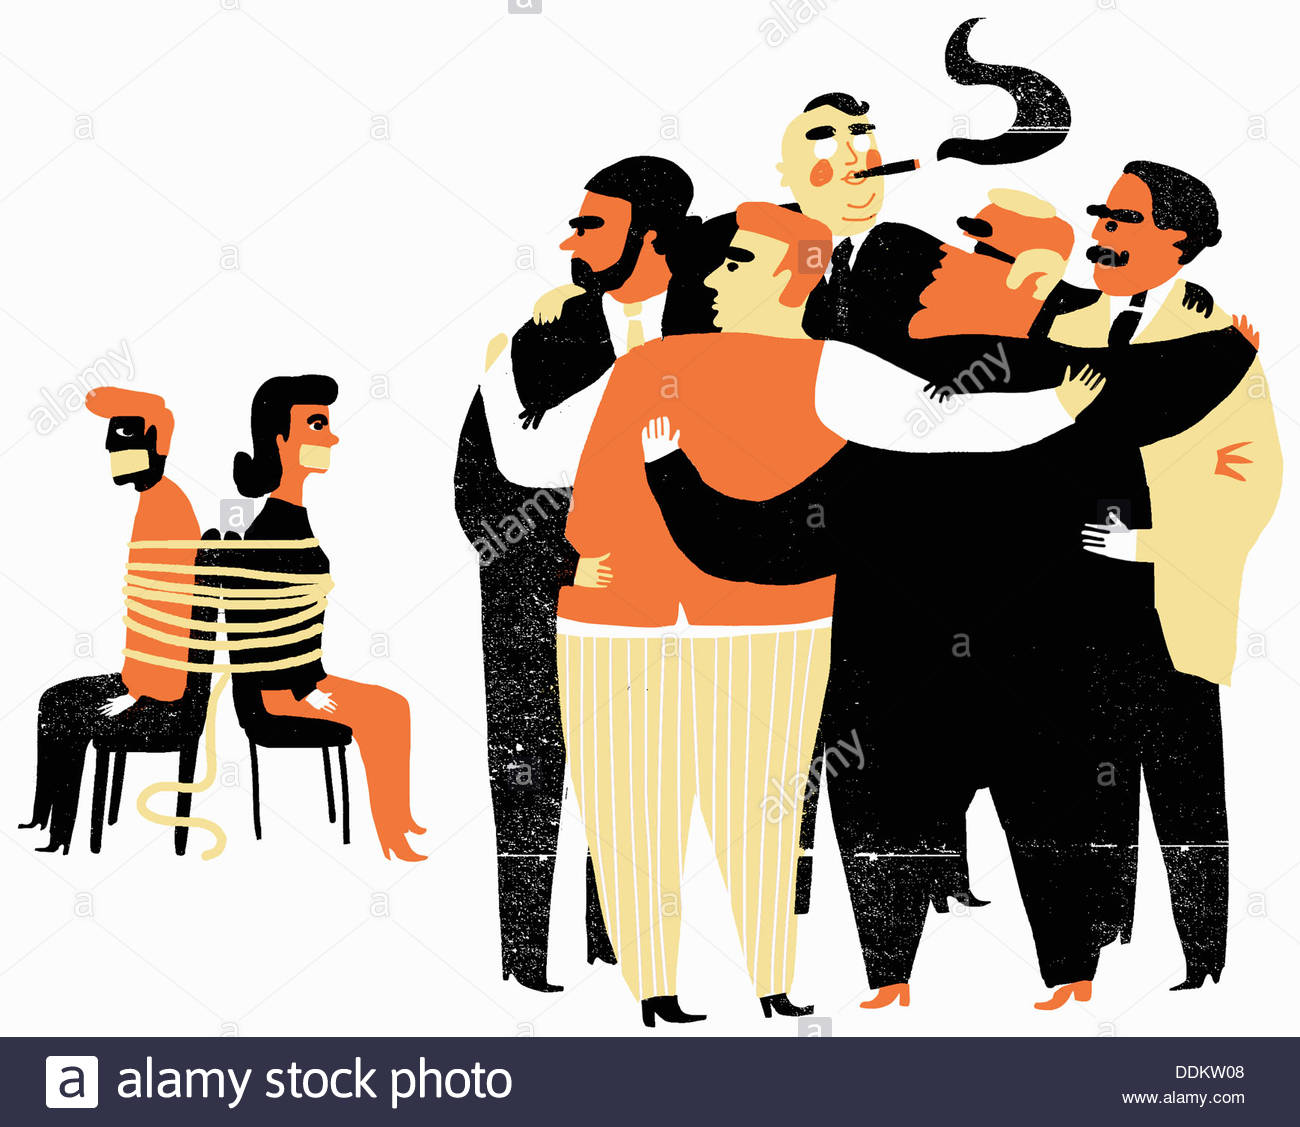 Men in huddle watching tied up couple Stock Photo